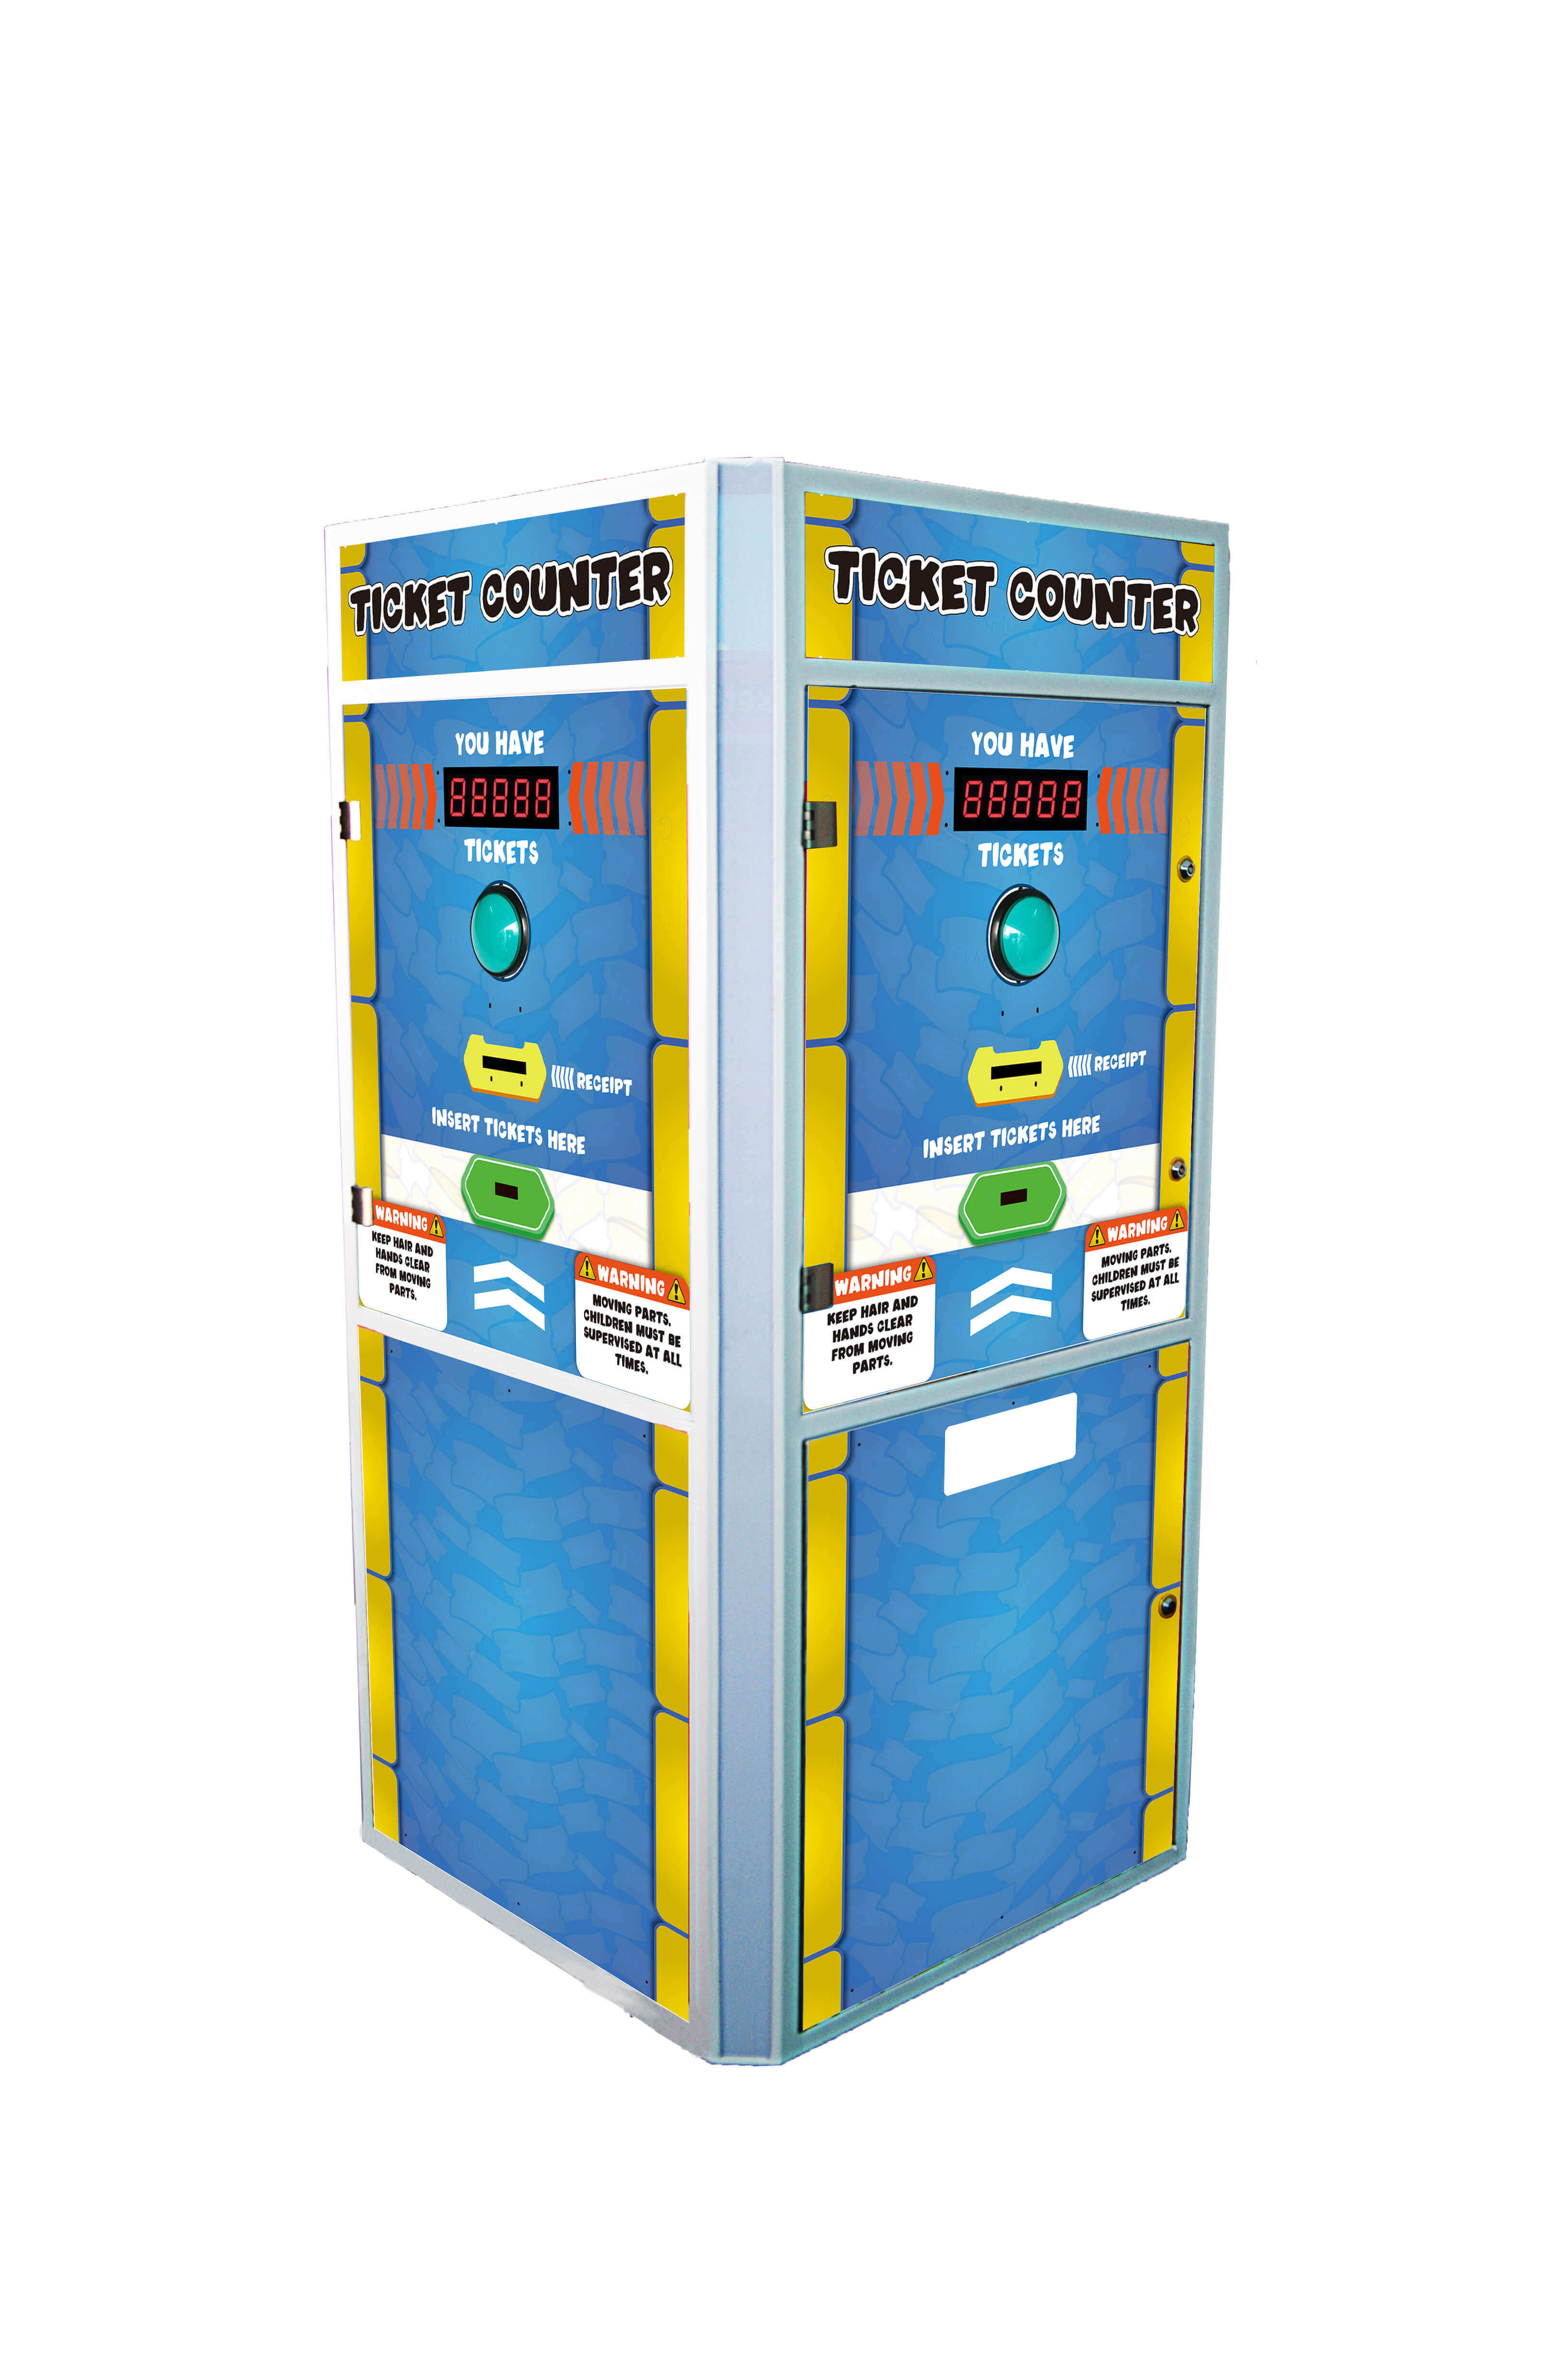 United Asia Entertainments Co., Ltd Releases Various Ticket Counter Game Machines And Retro Arcade Game Machines Providing Quality Entertainment For People of Different Ages